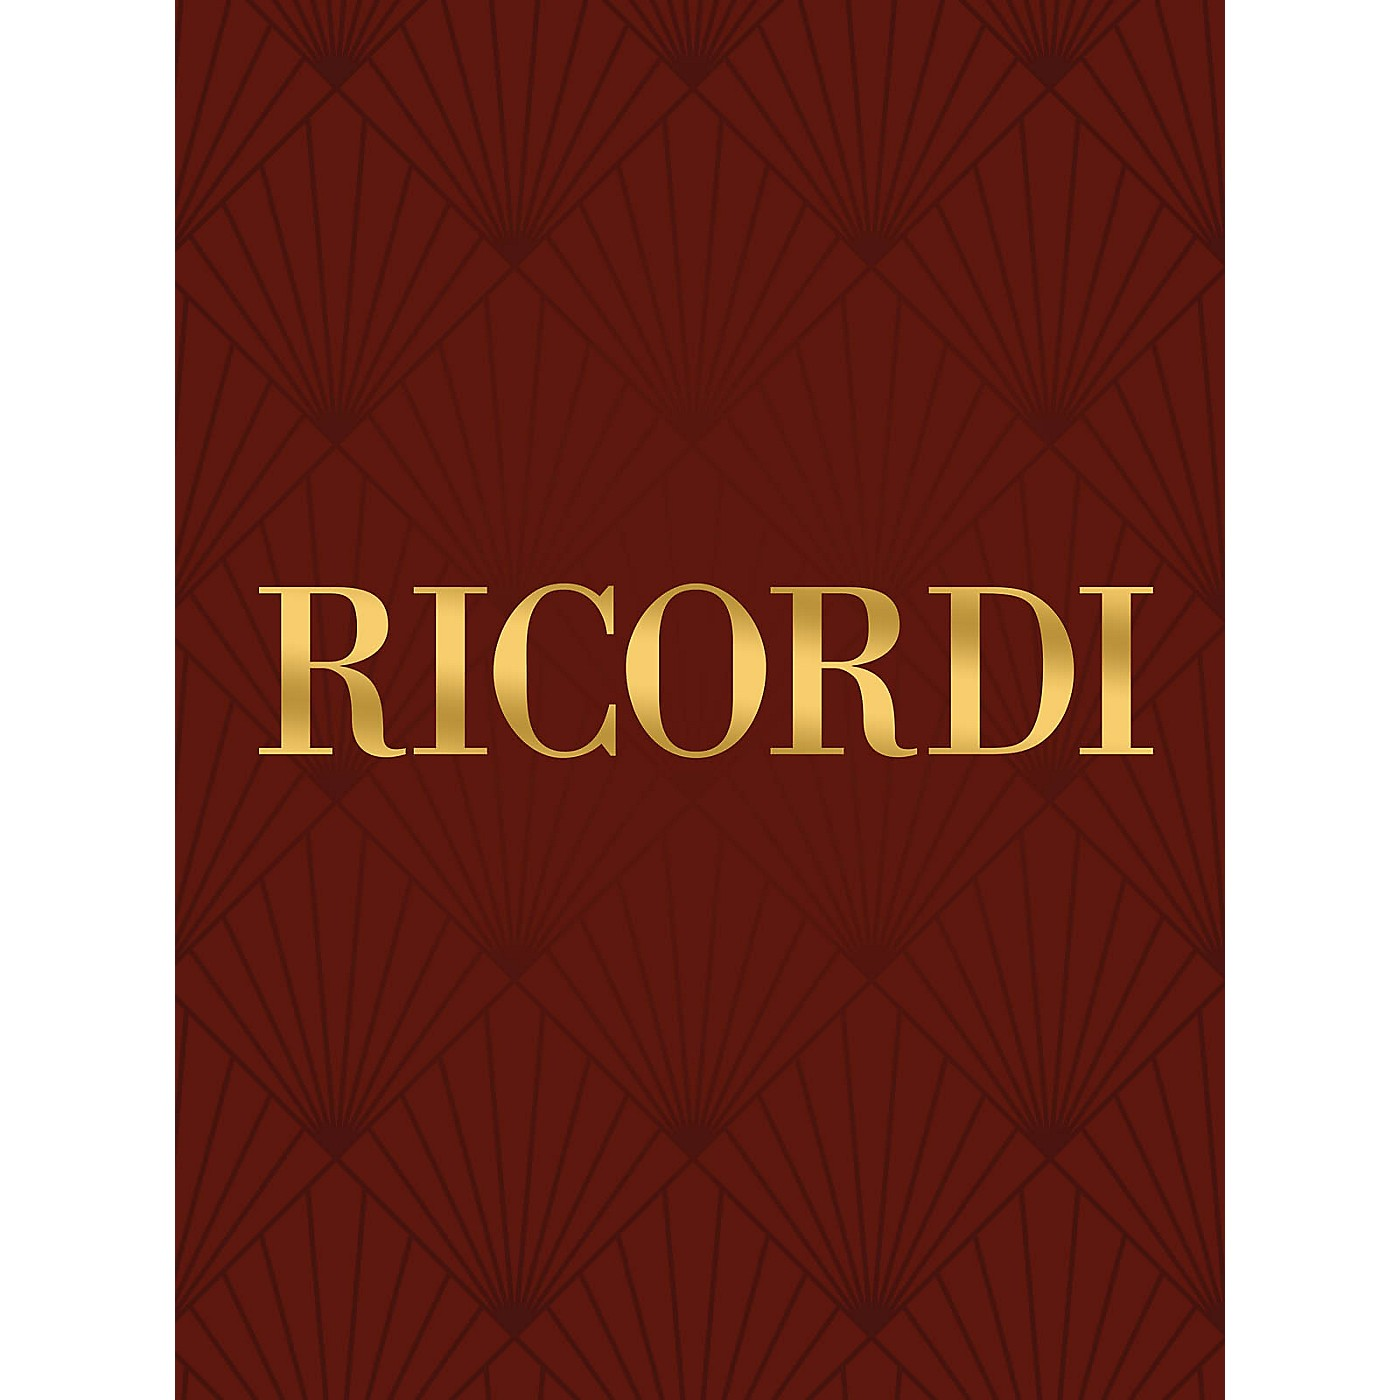 Ricordi 6 Sonatinas, Op. 36 Piano Large Works Series Composed by Muzio Clementi Edited by Ernesto Marciano thumbnail